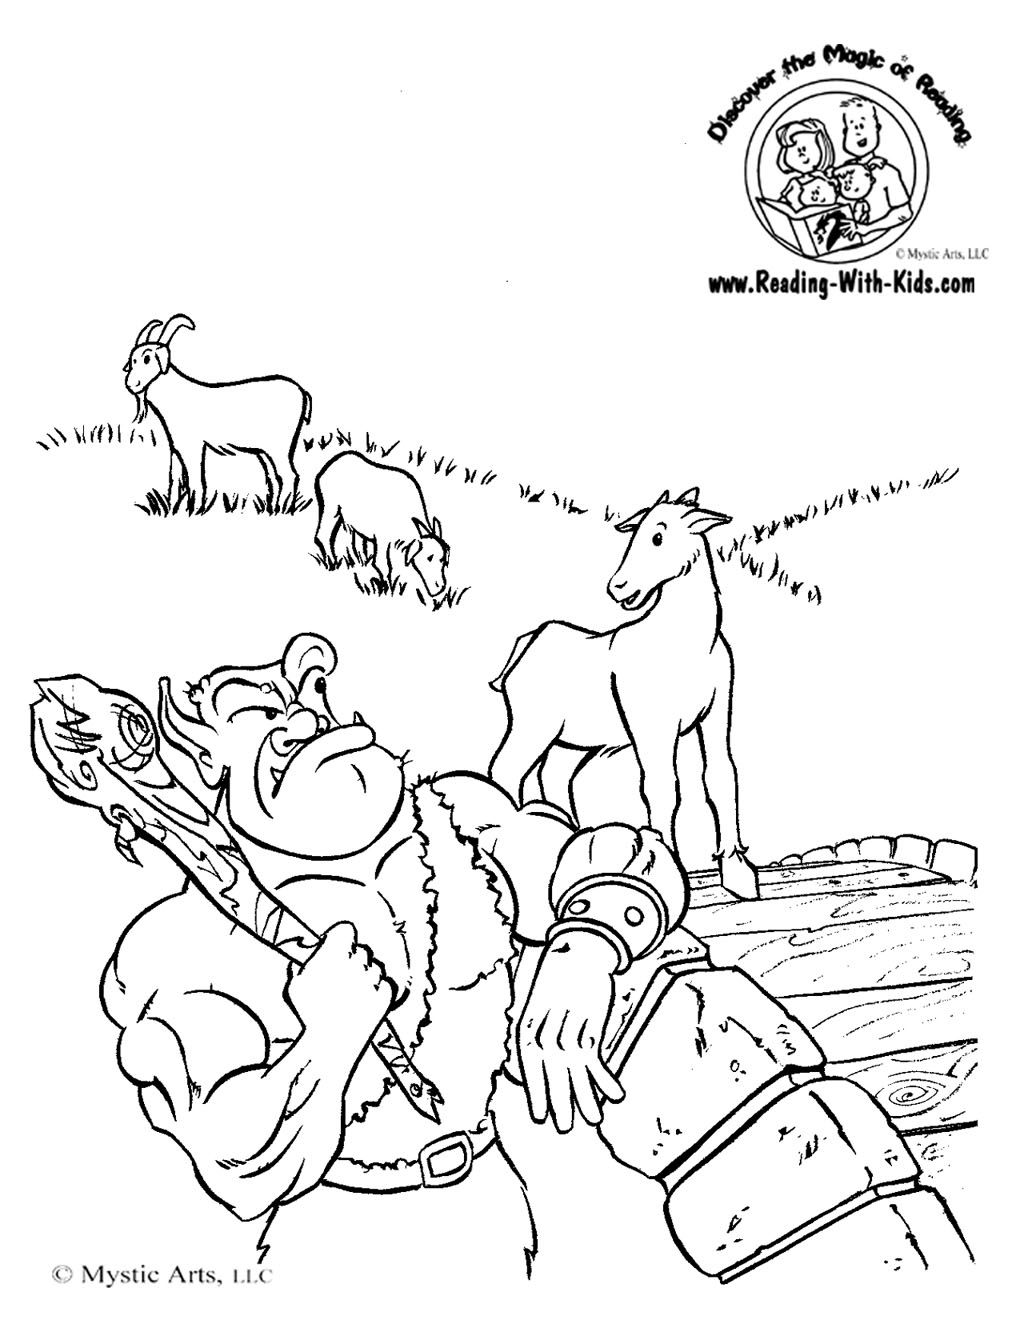 Worksheet Billy Goats Gruff Story 1000 images about 3 billy goats gruff on pinterest resources for teachers student centered and sensory activities